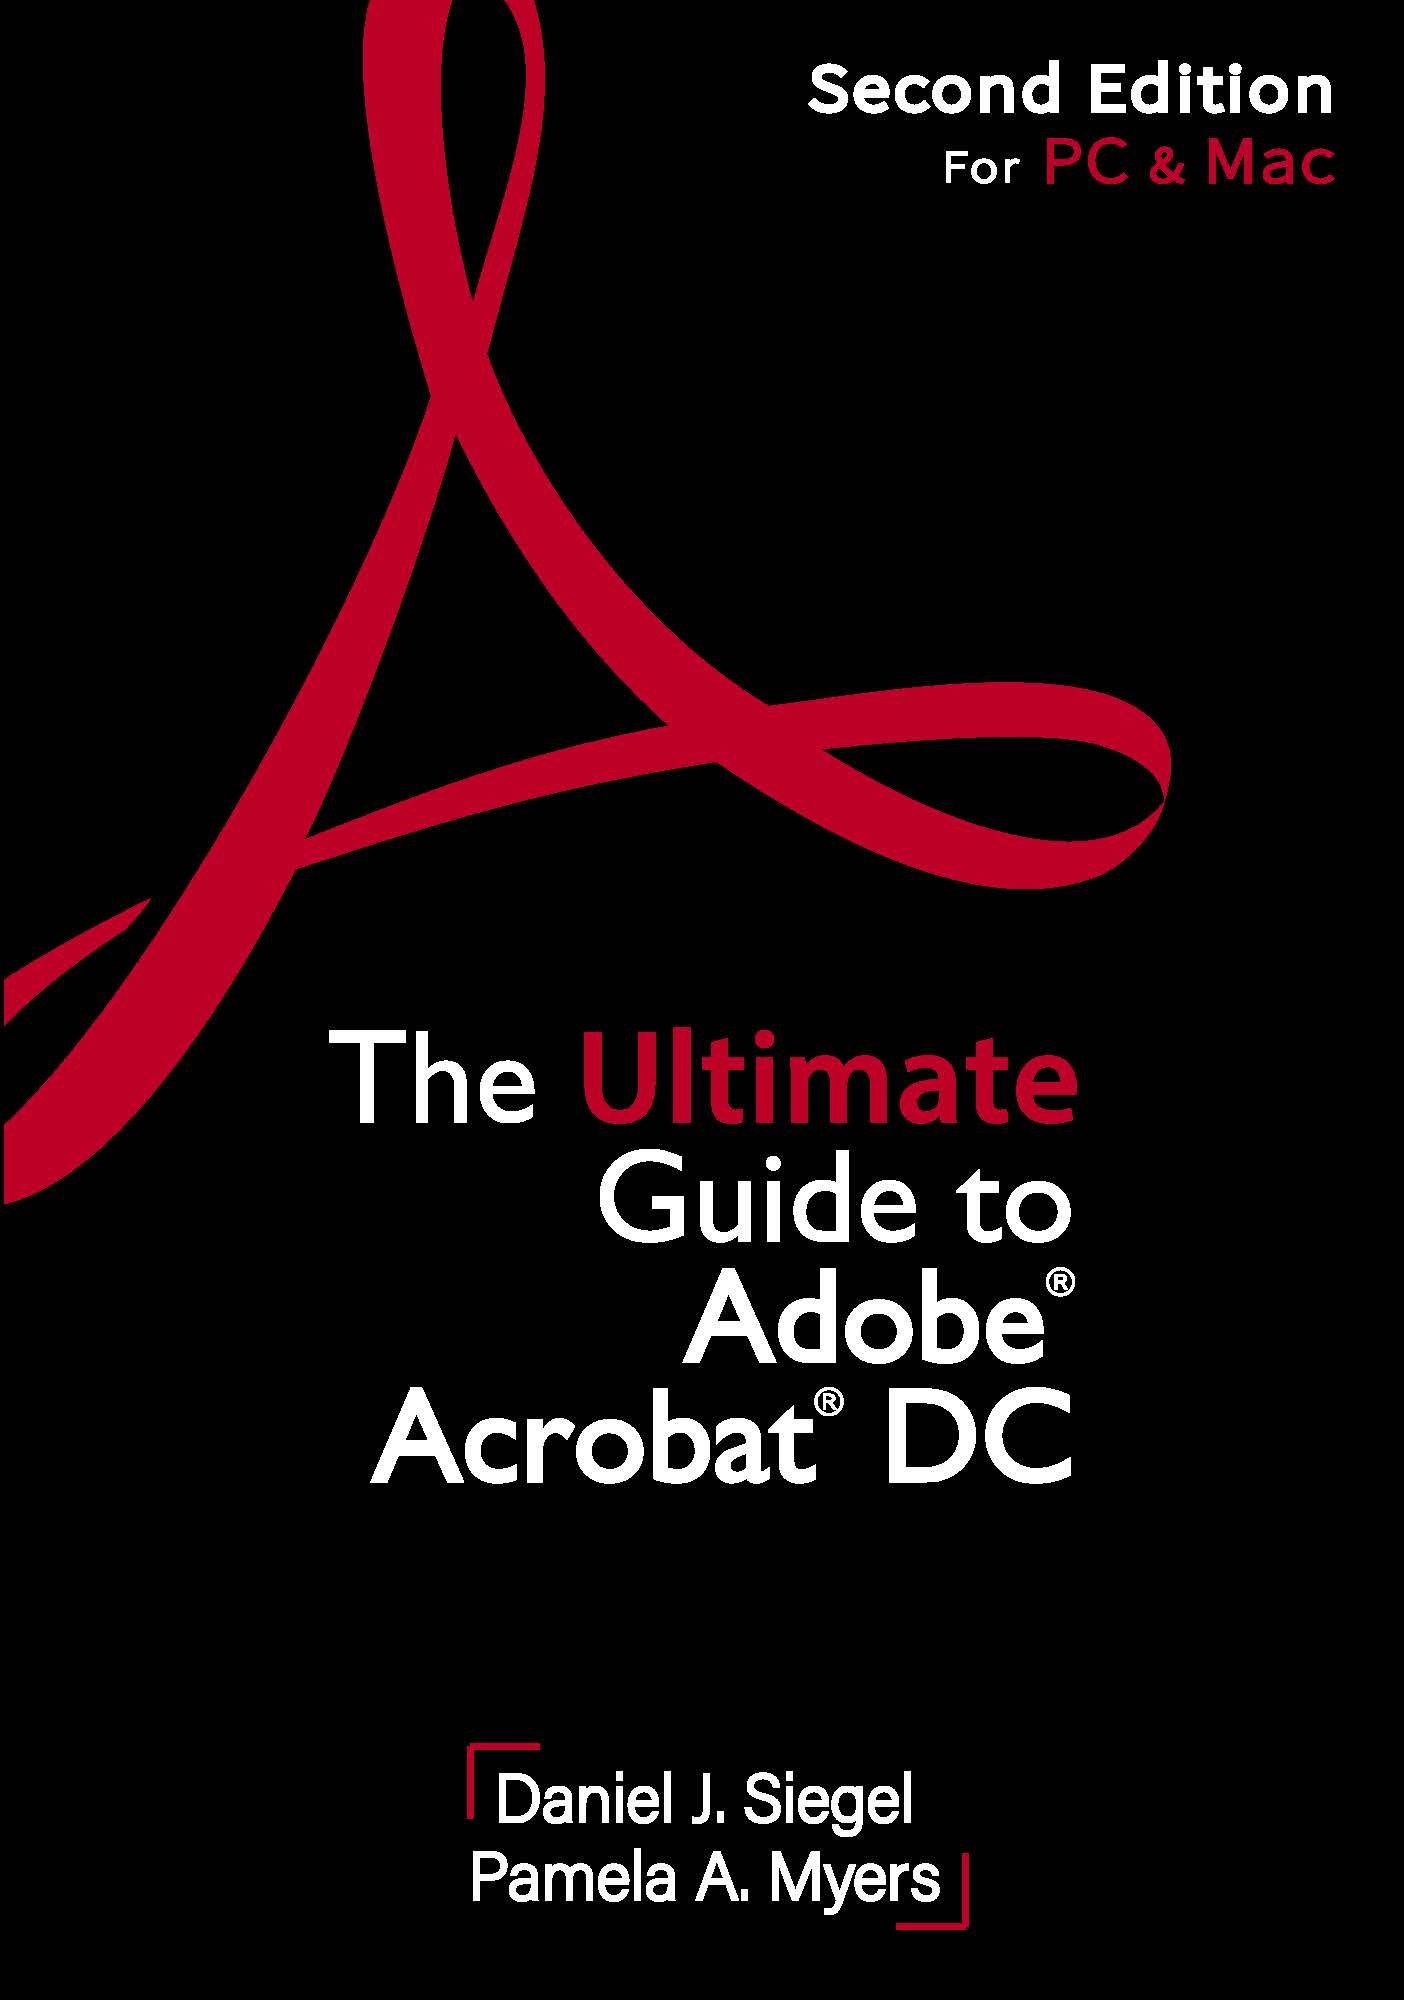 The Ultimate Guide to Adobe Acrobat DC Professional (Second Edition For PC & Mac)